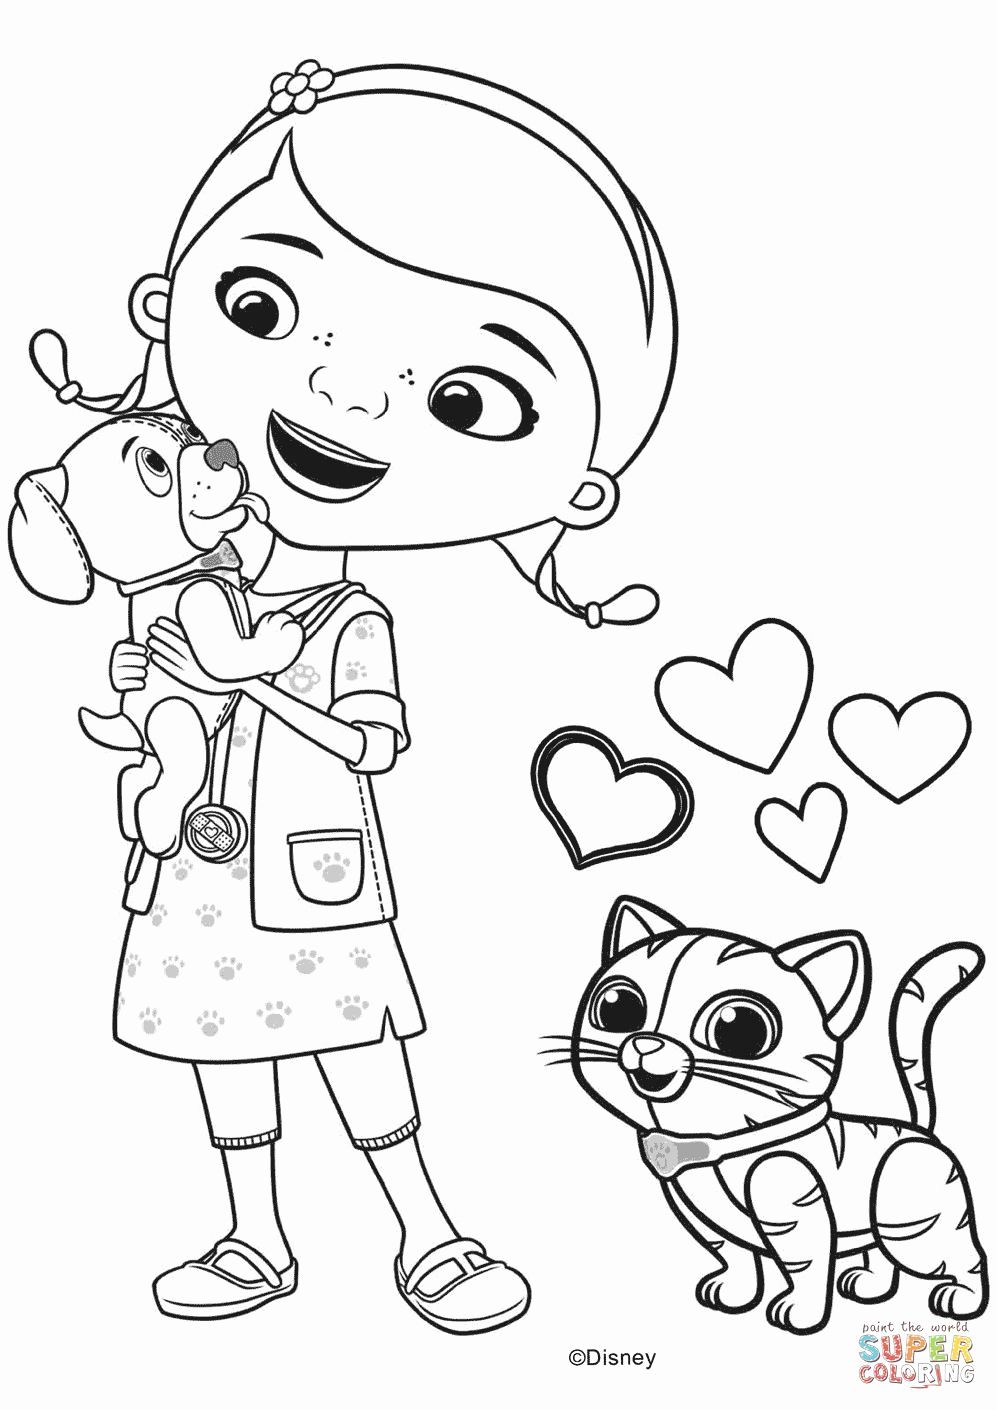 Coloring Pages For Kids Disney Jr Doc Mcstuffins Coloring Pages Disney Coloring Pages Free Coloring Pages